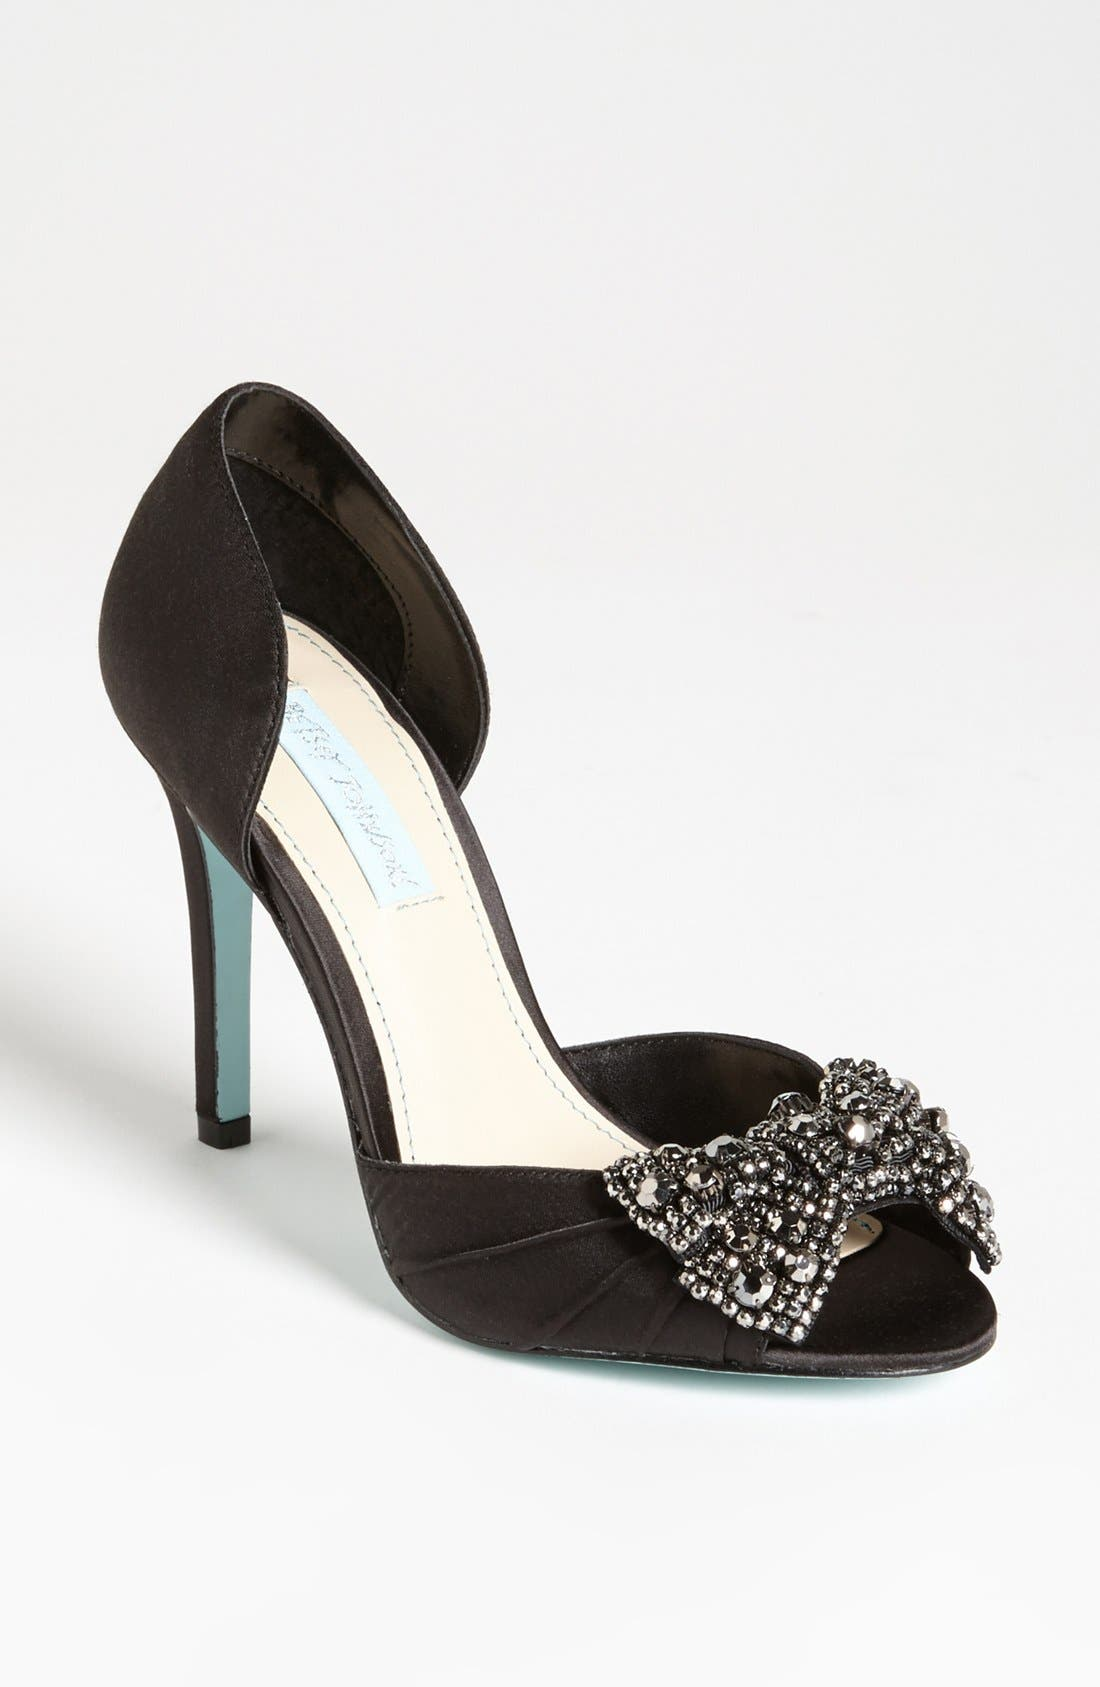 Main Image - Blue by Betsey Johnson 'Gown' Sandal